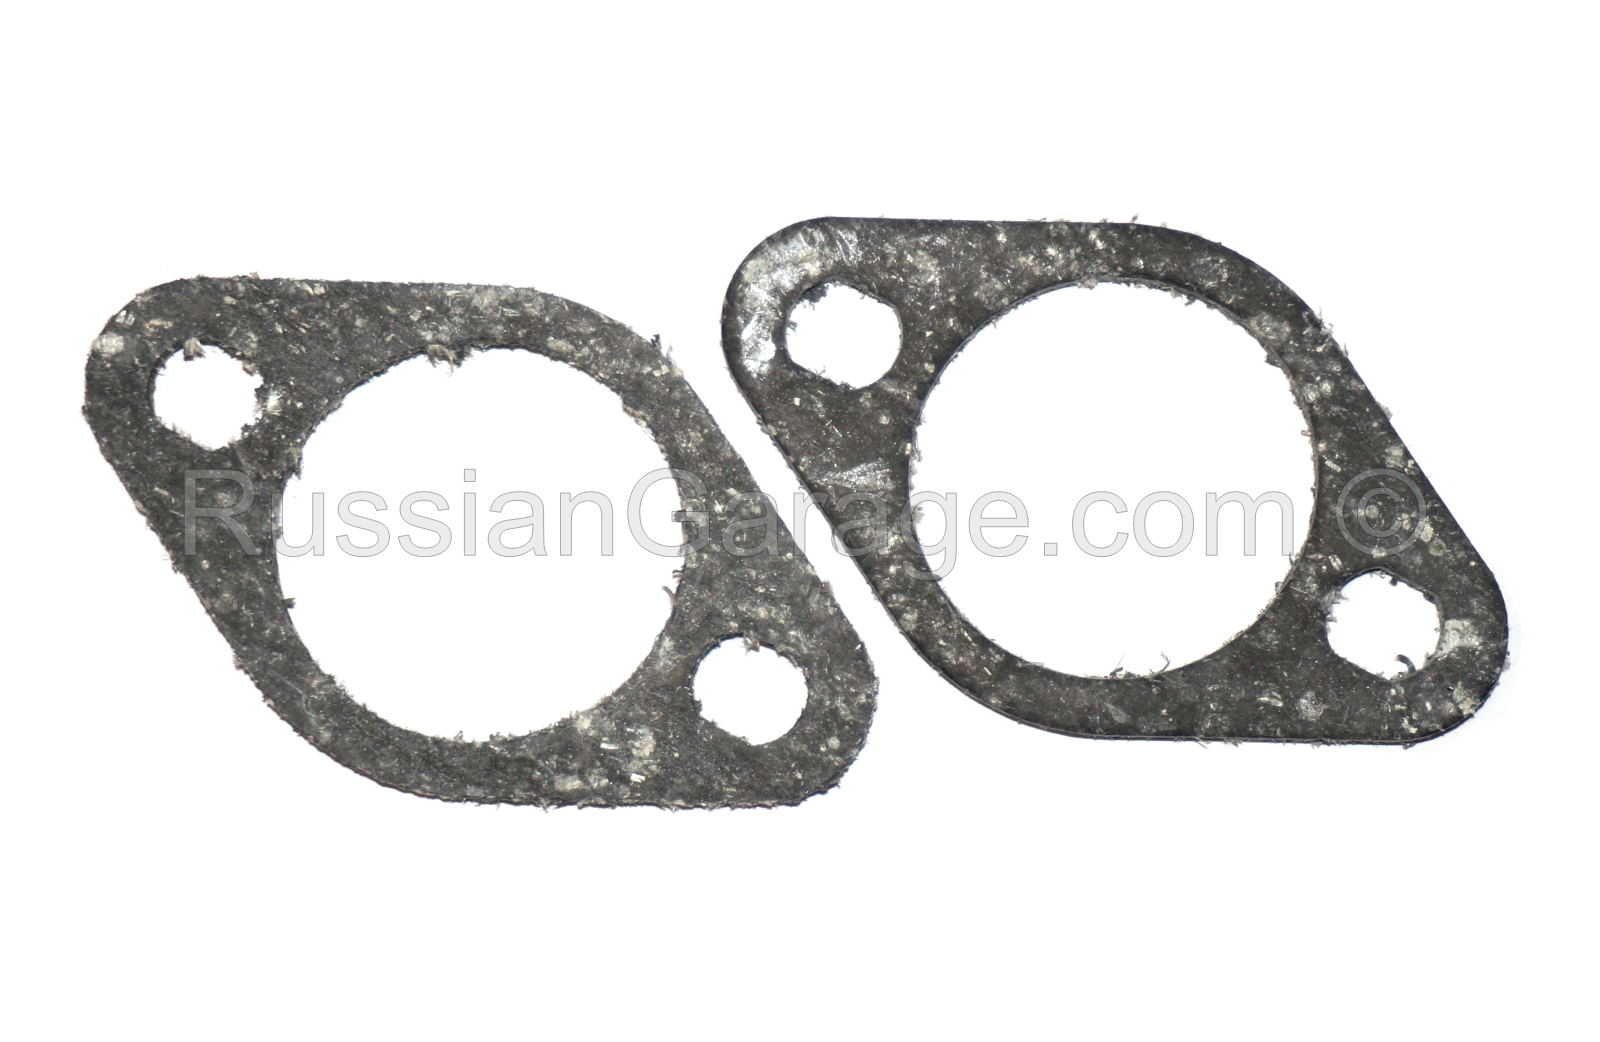 Carburetor paronite gaskets 3.0mm thickness (set of 2pc